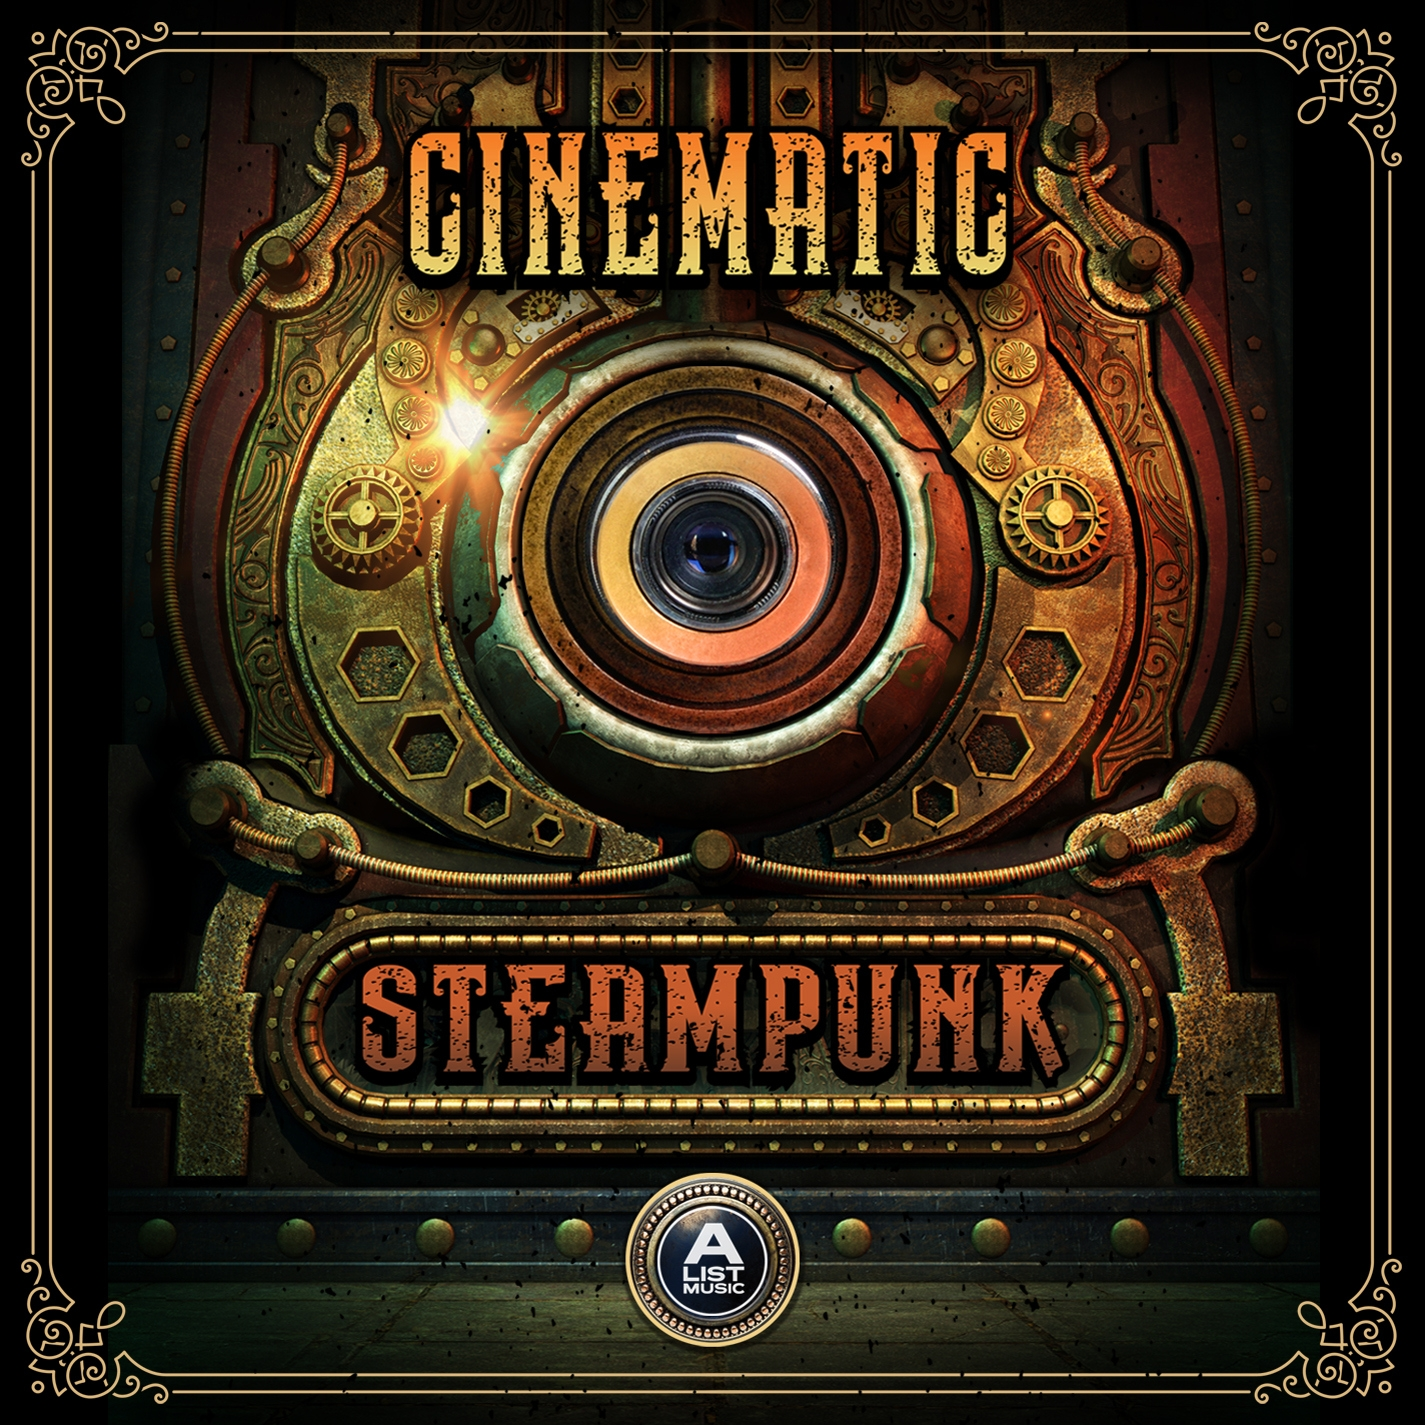 Cinematic Steampunk - Eclectic, Neoclassical, Punk